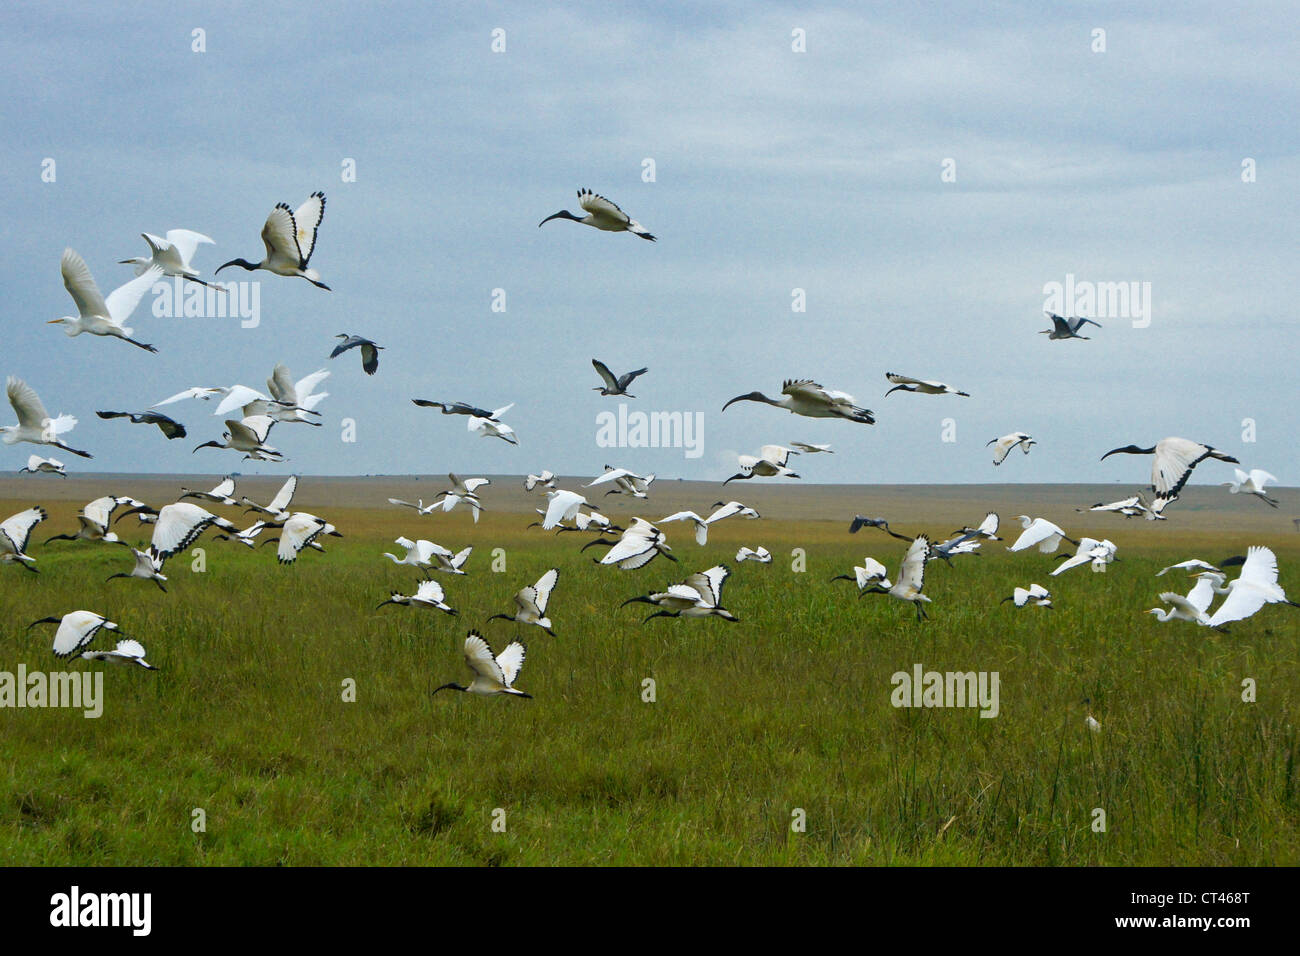 Birds flying over Musiara Marsh, Masai Mara, Kenya - Stock Image